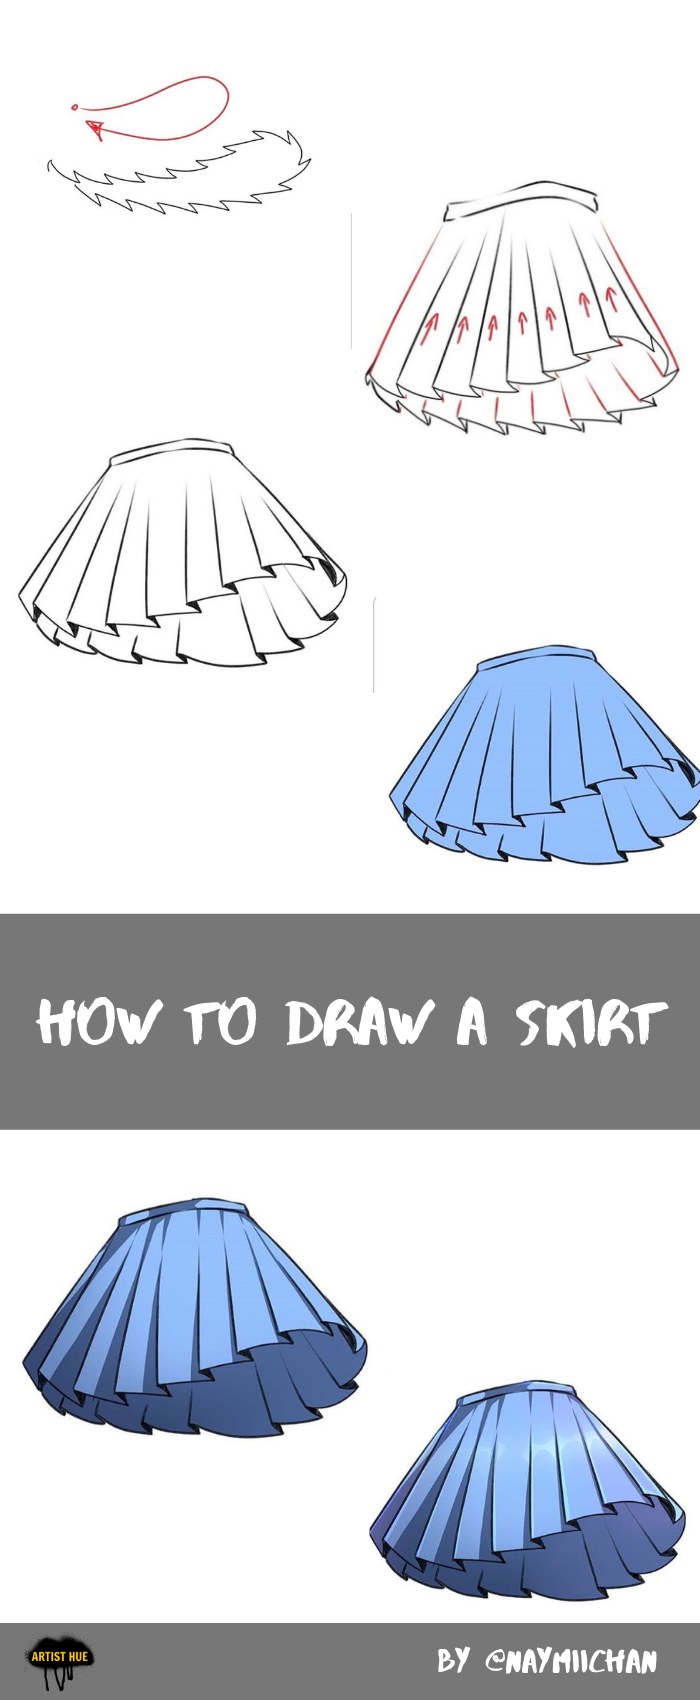 How To Draw A Skirt How To Draw Skirt Drawing Anime Clothes Anime Skirts